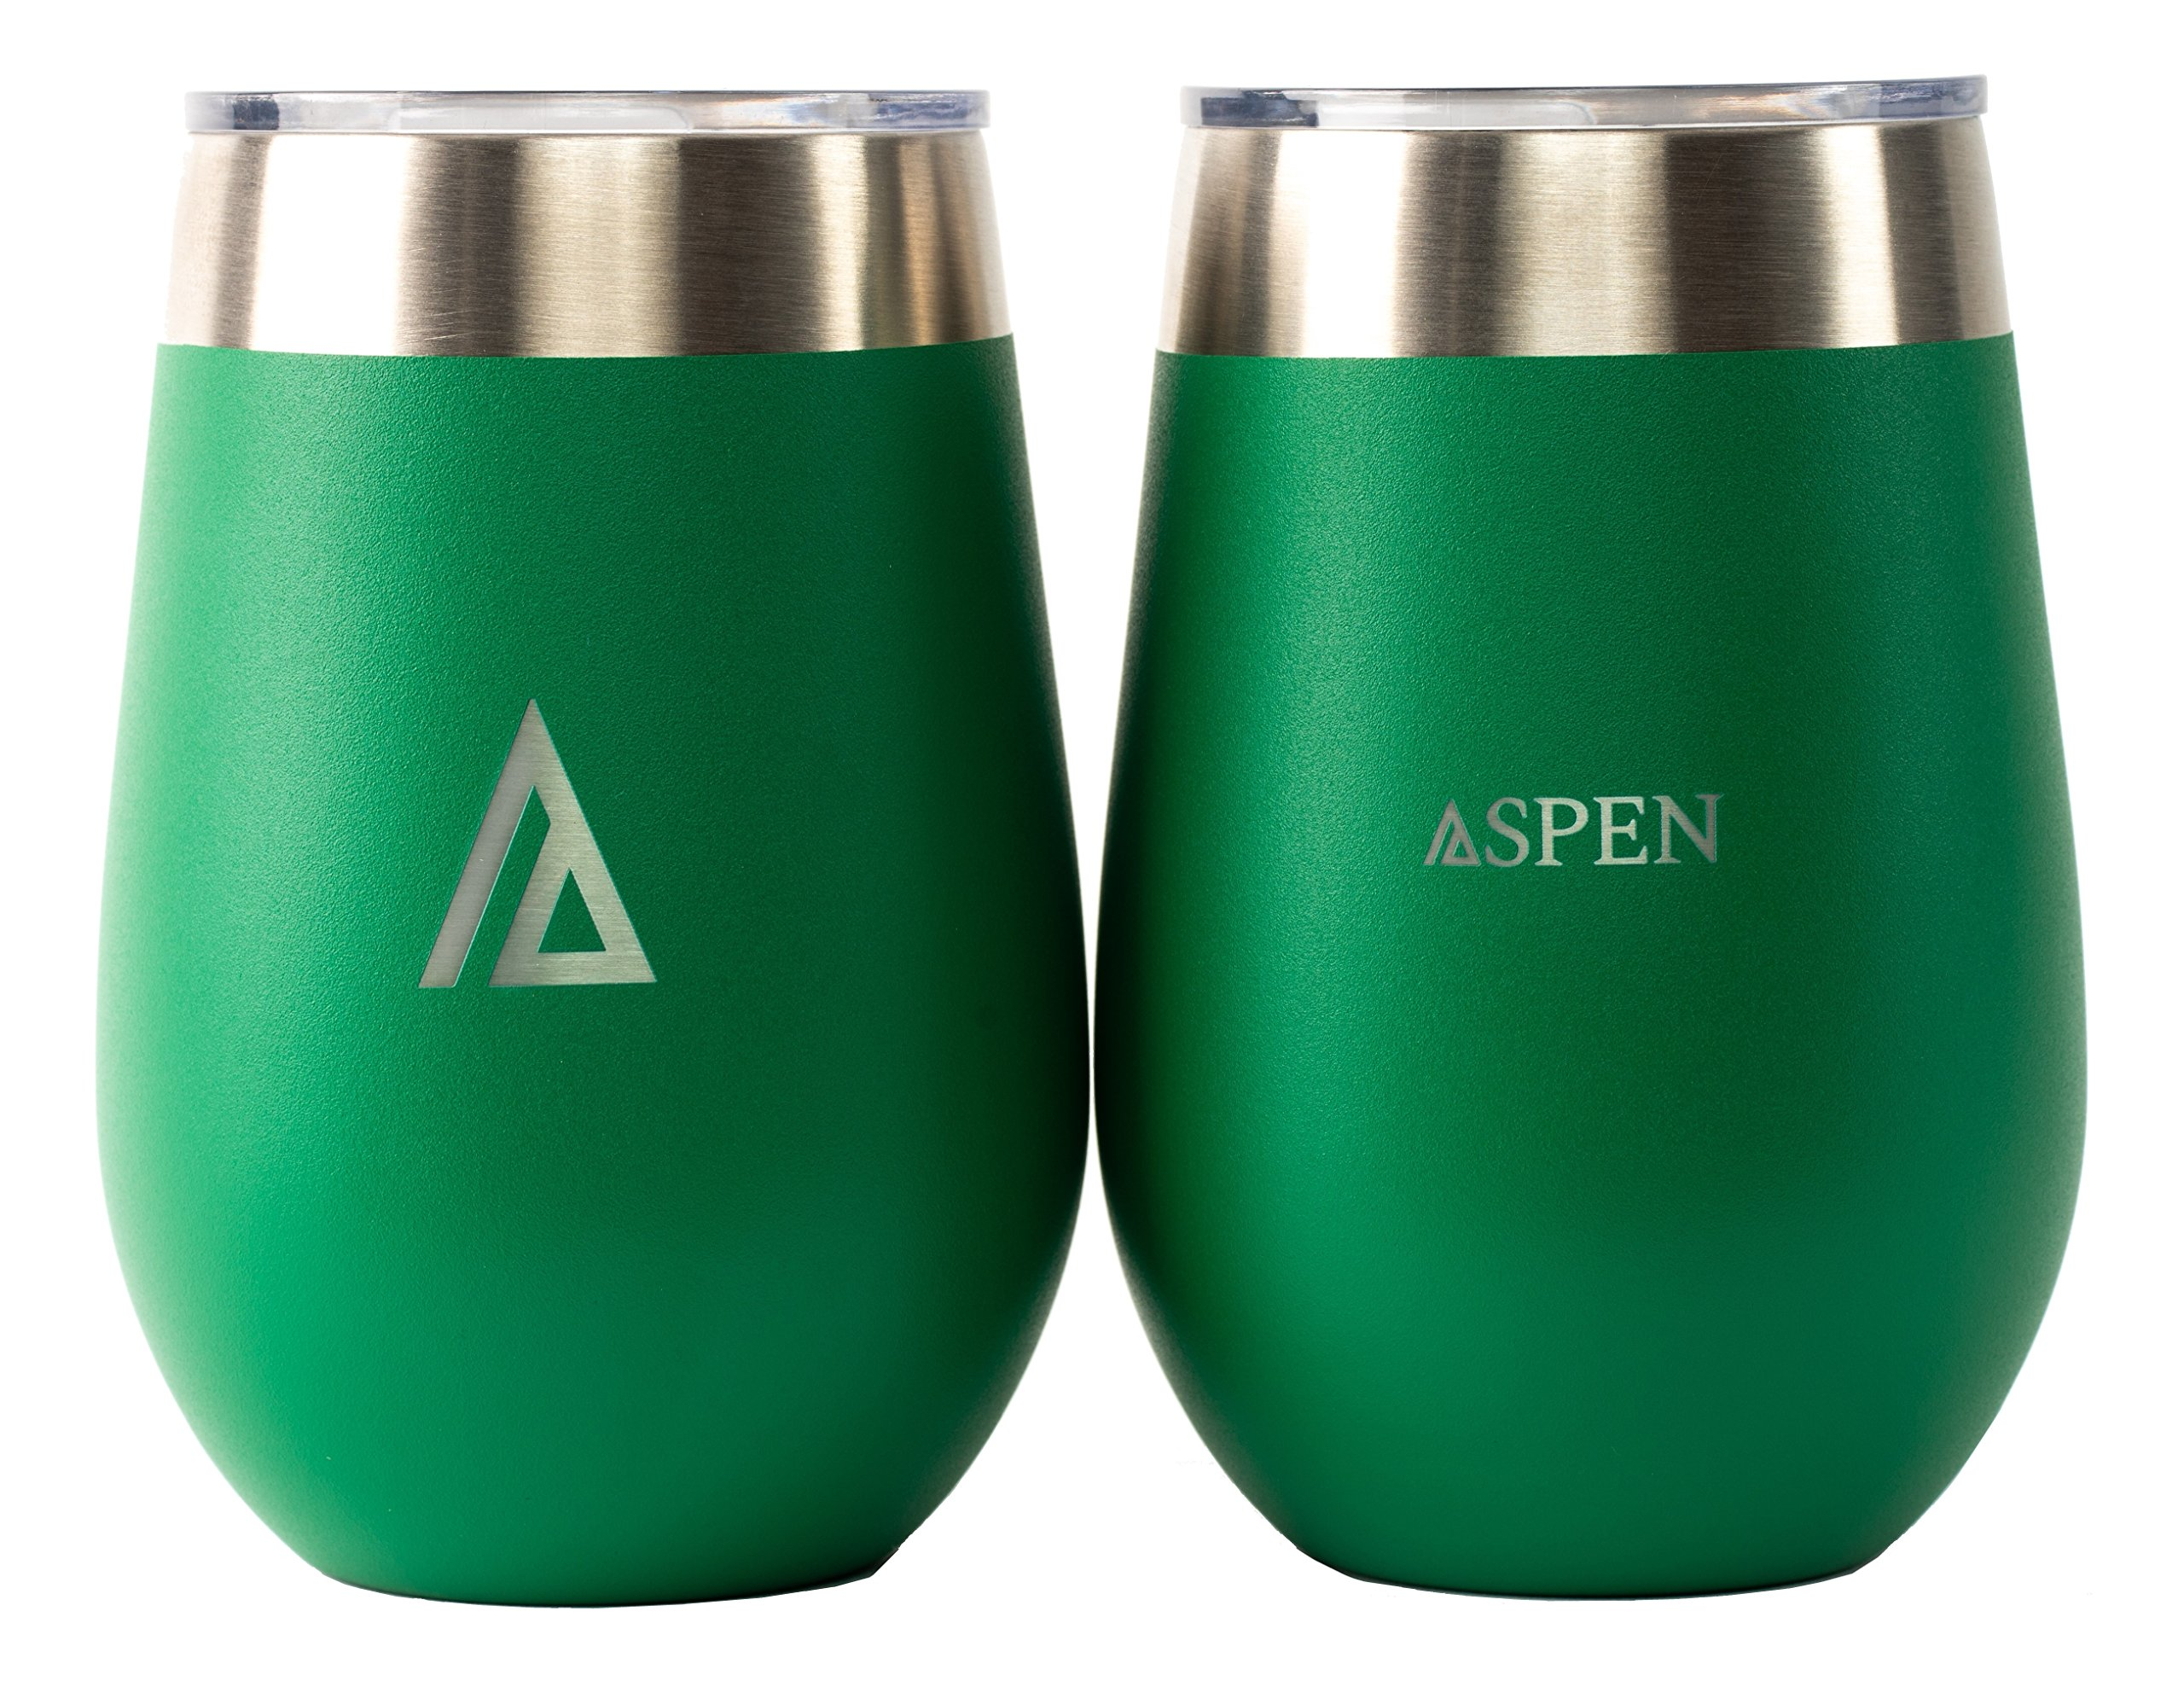 Aspen 12 oz Wine Glasses with Lid, Vacuum Insulated Double-Wall, Stainless Steel Tumbler (Set of 2)